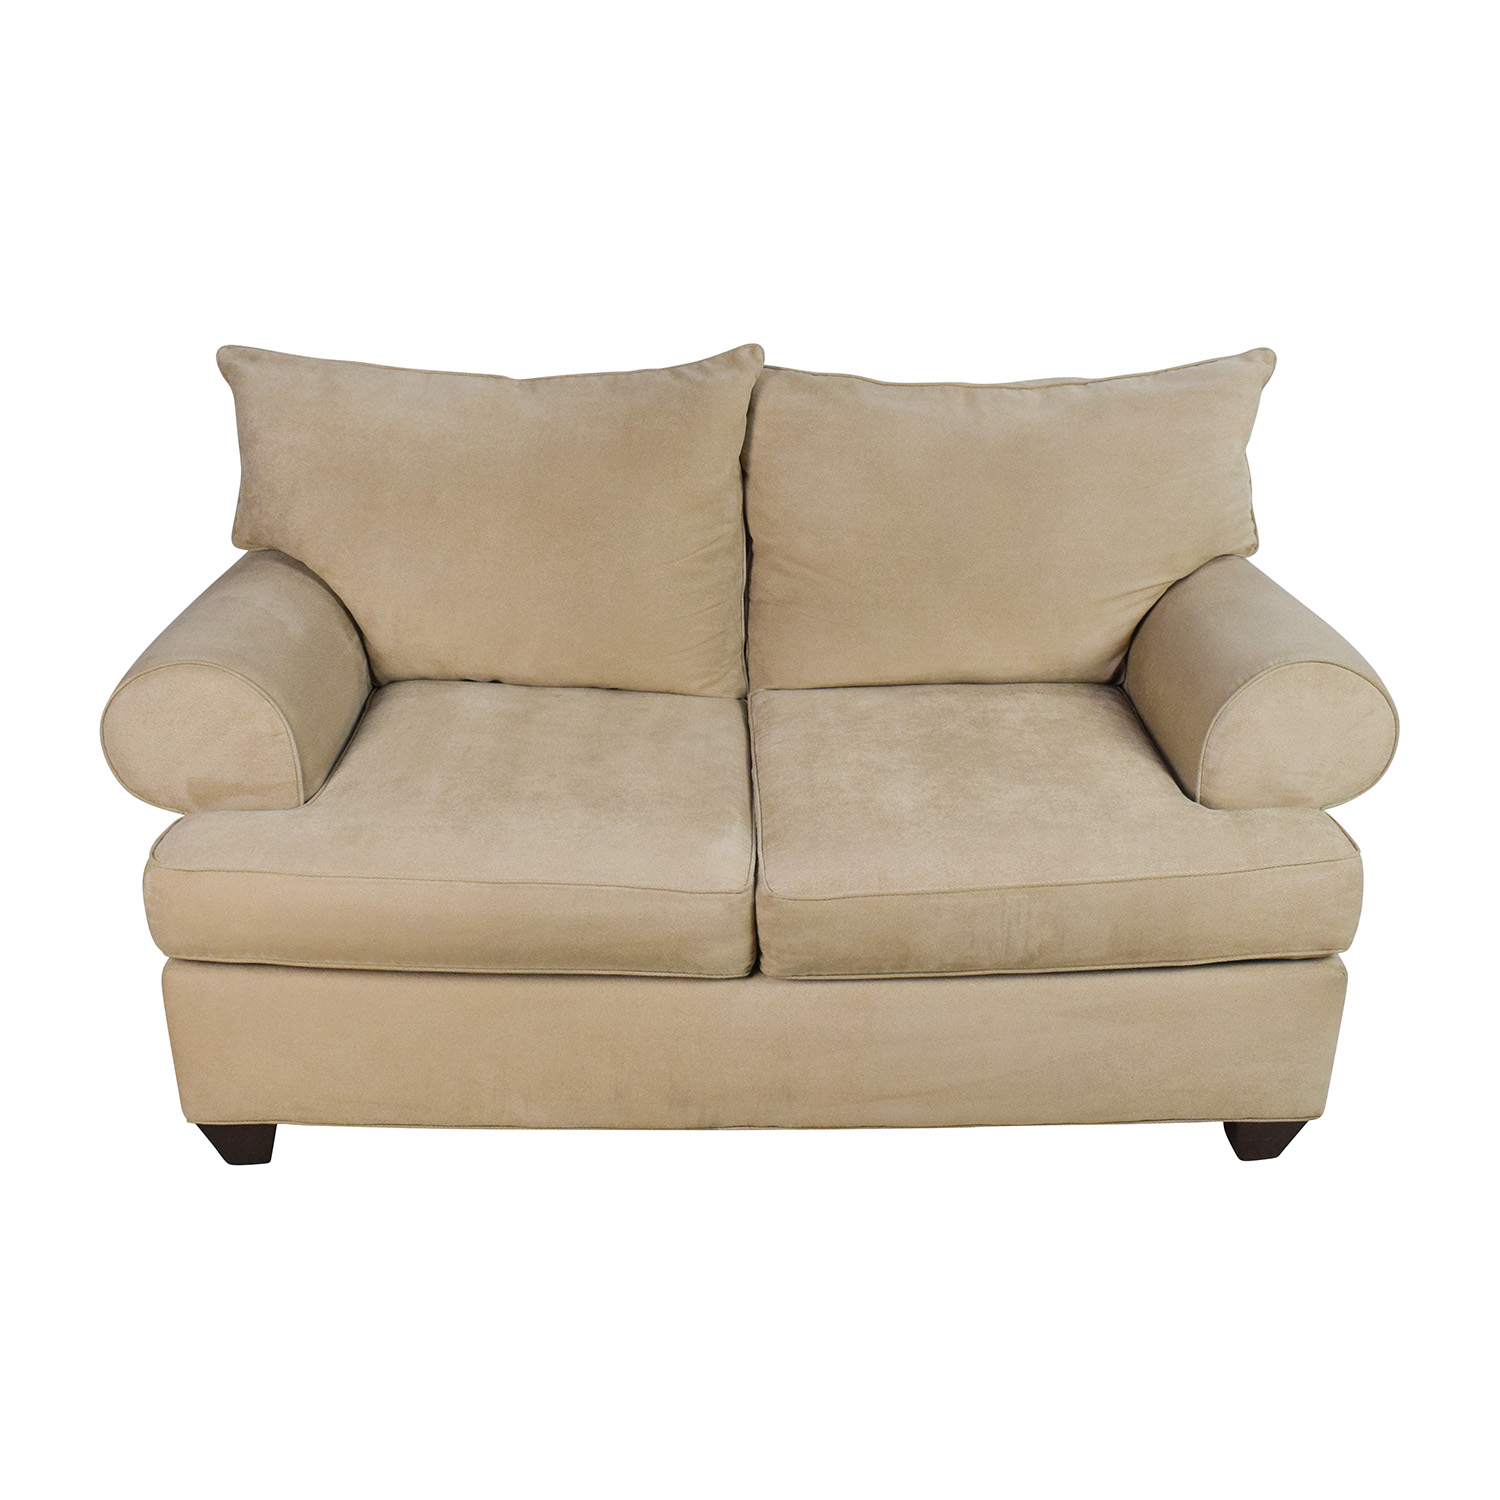 Raymour and Flanigan Raymour & Flanigan Beige Microfiber Loveseat dimensions